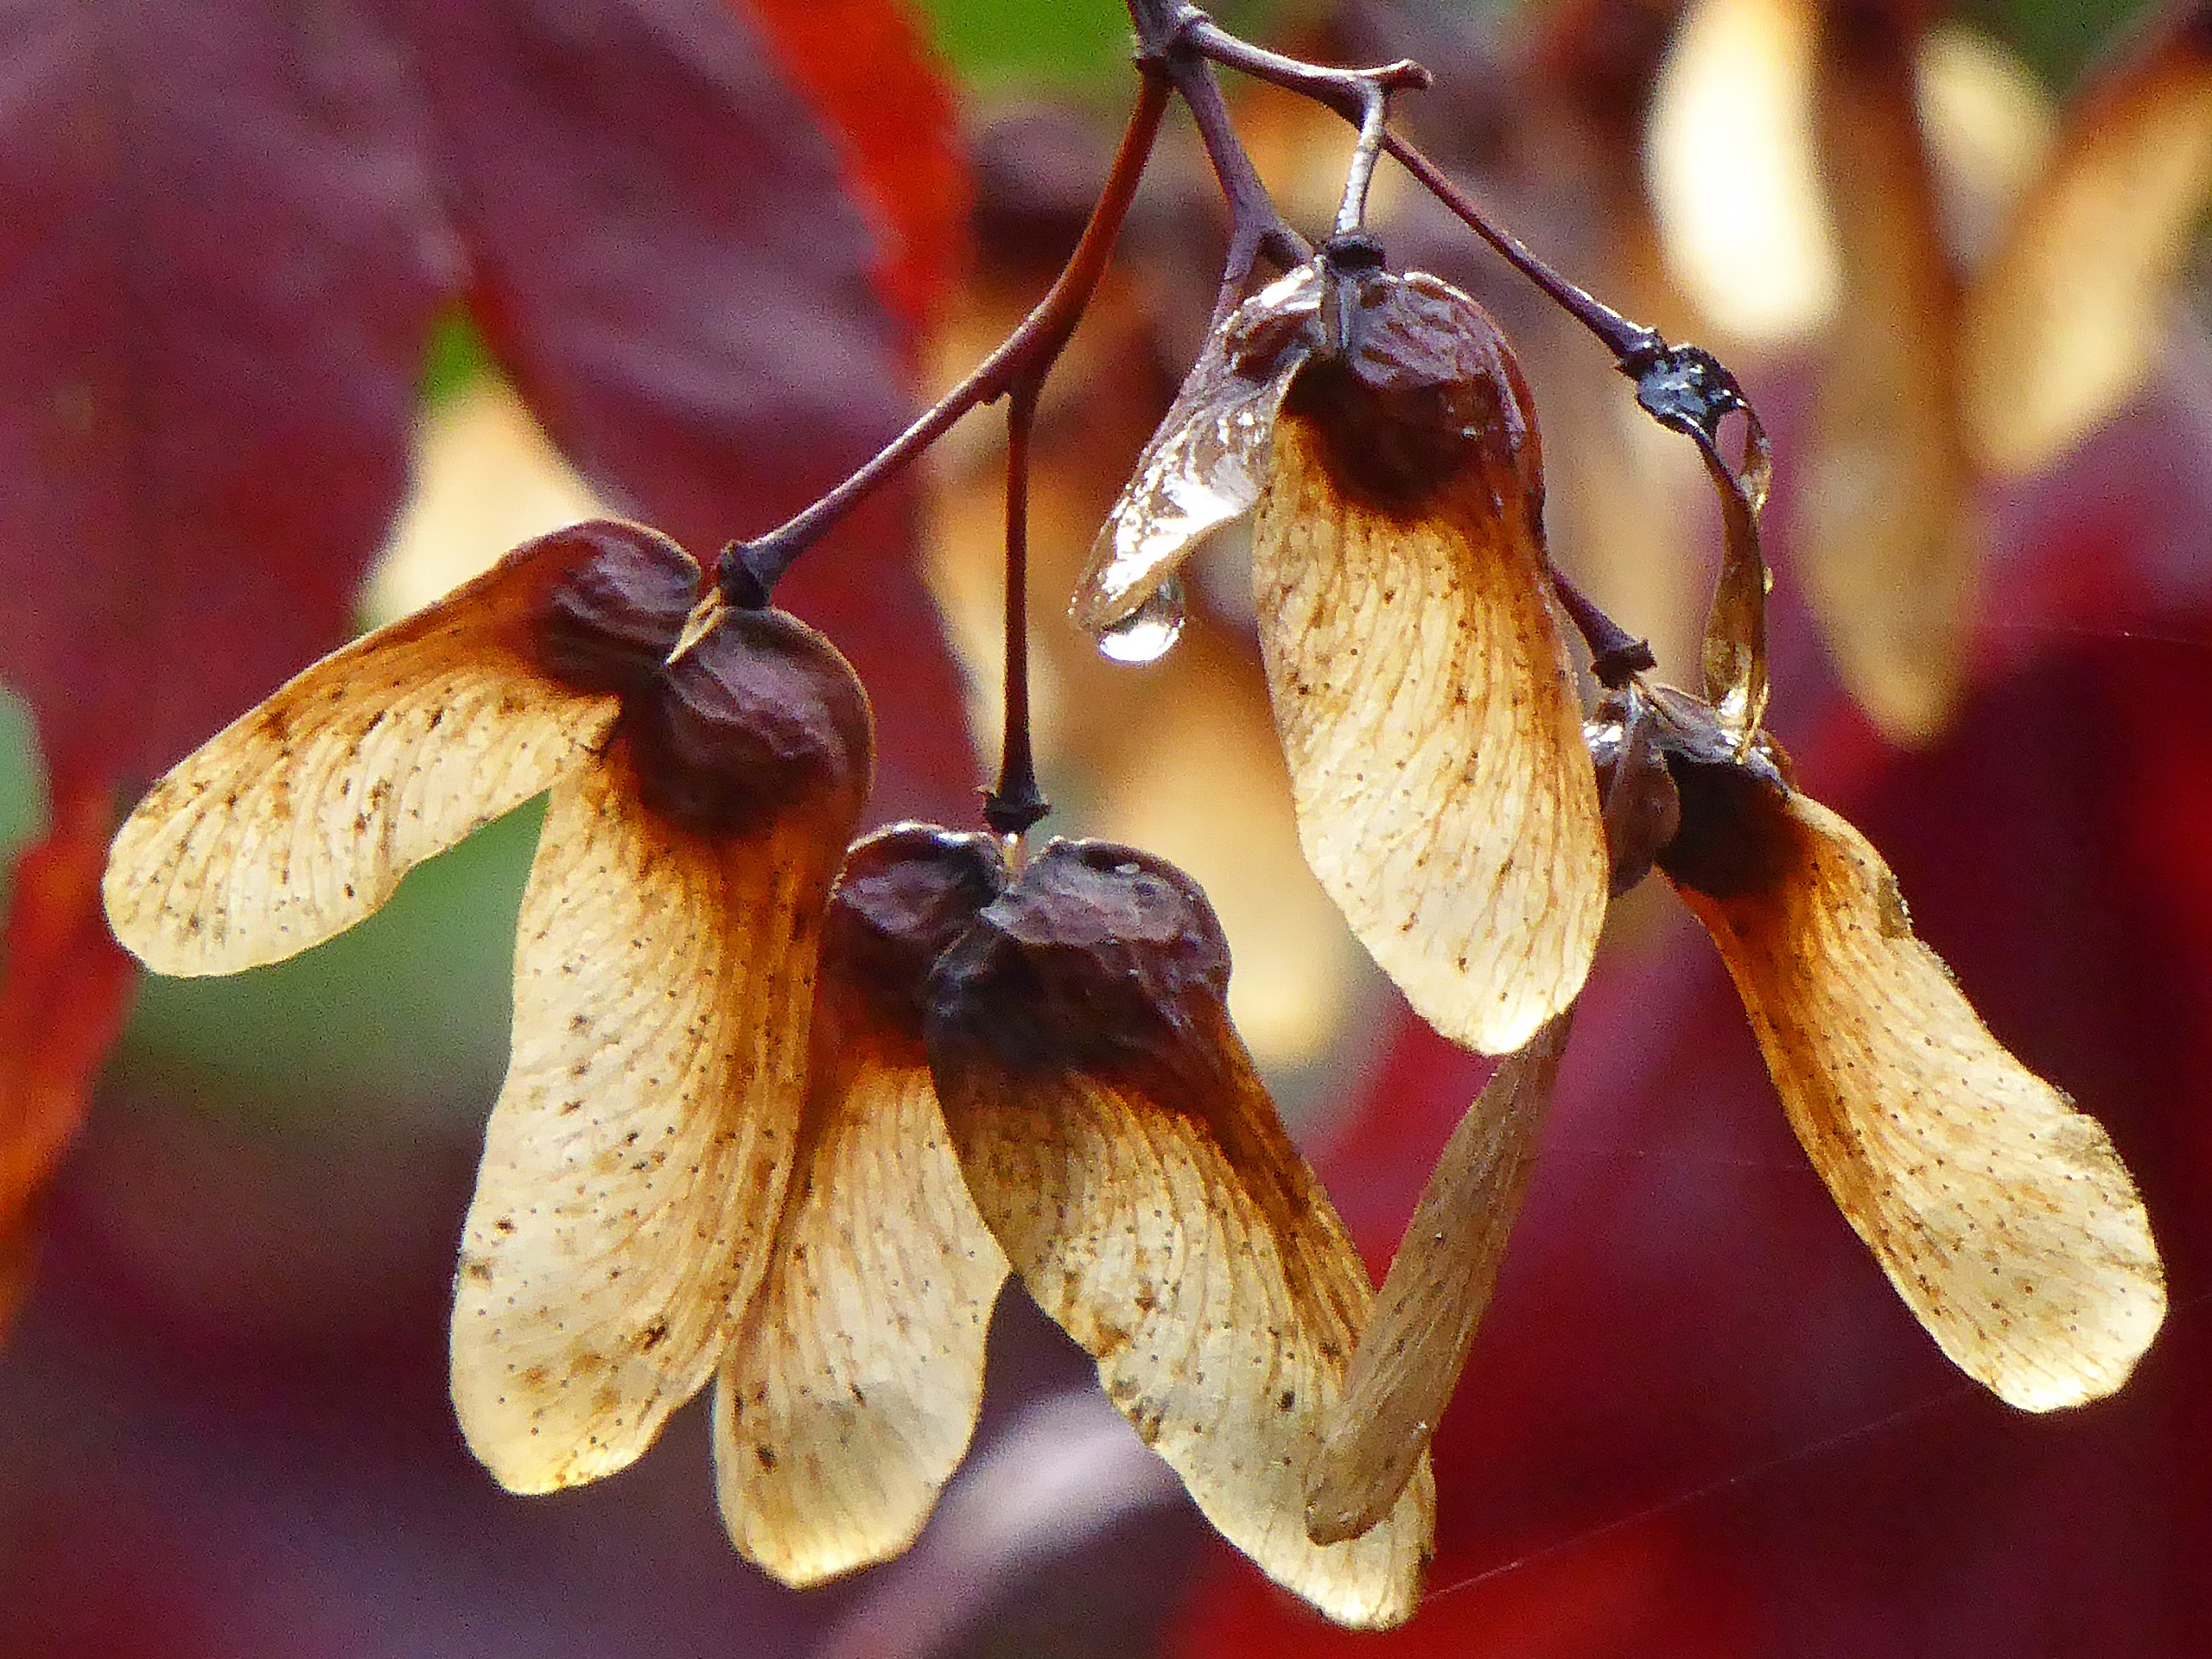 Japanese Maple tree seeds